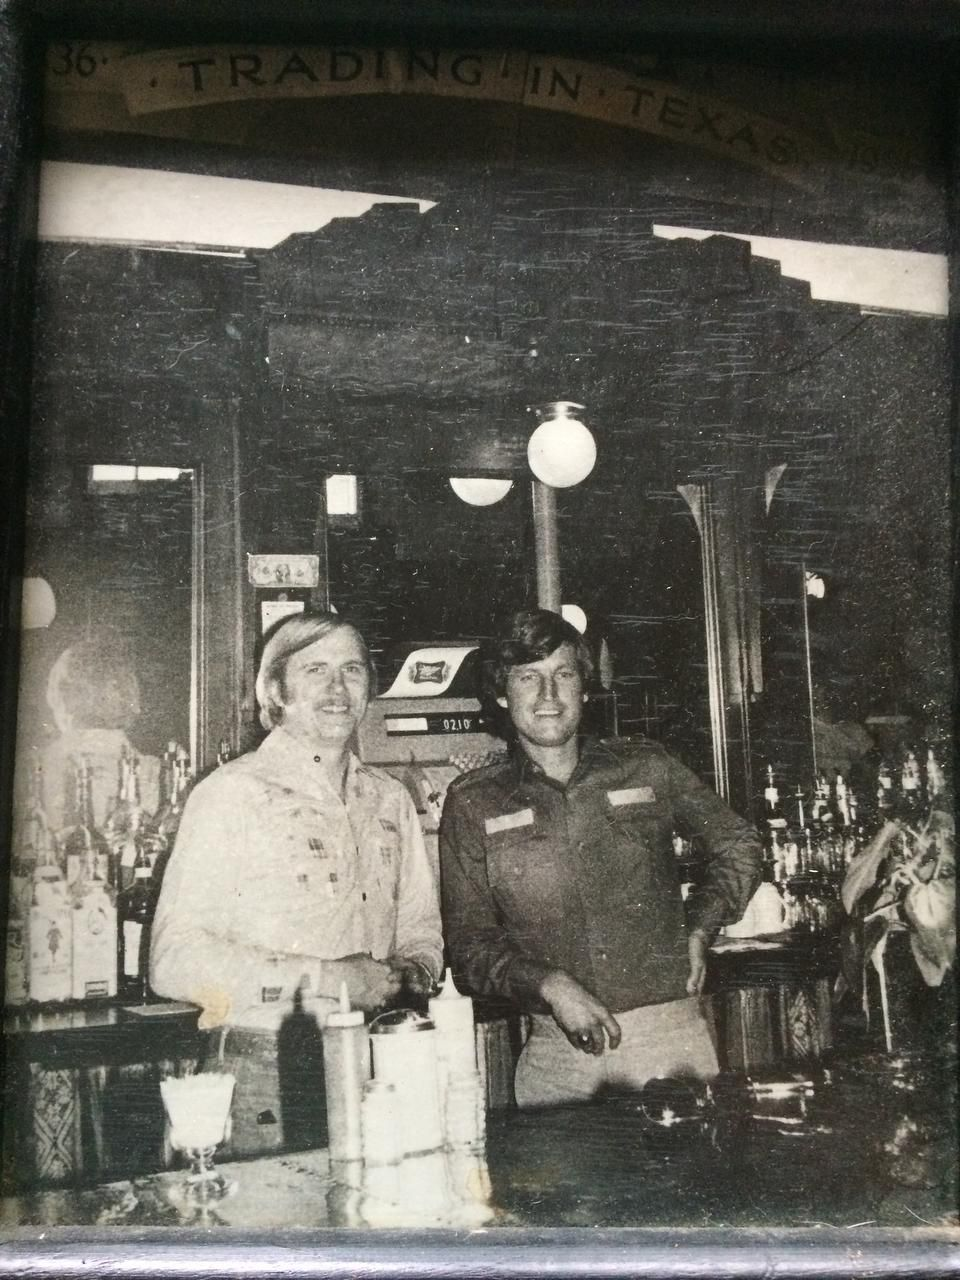 Phil Cobb and Gene Street paused for a photo shortly after their first Black-Eyed Pea opened.